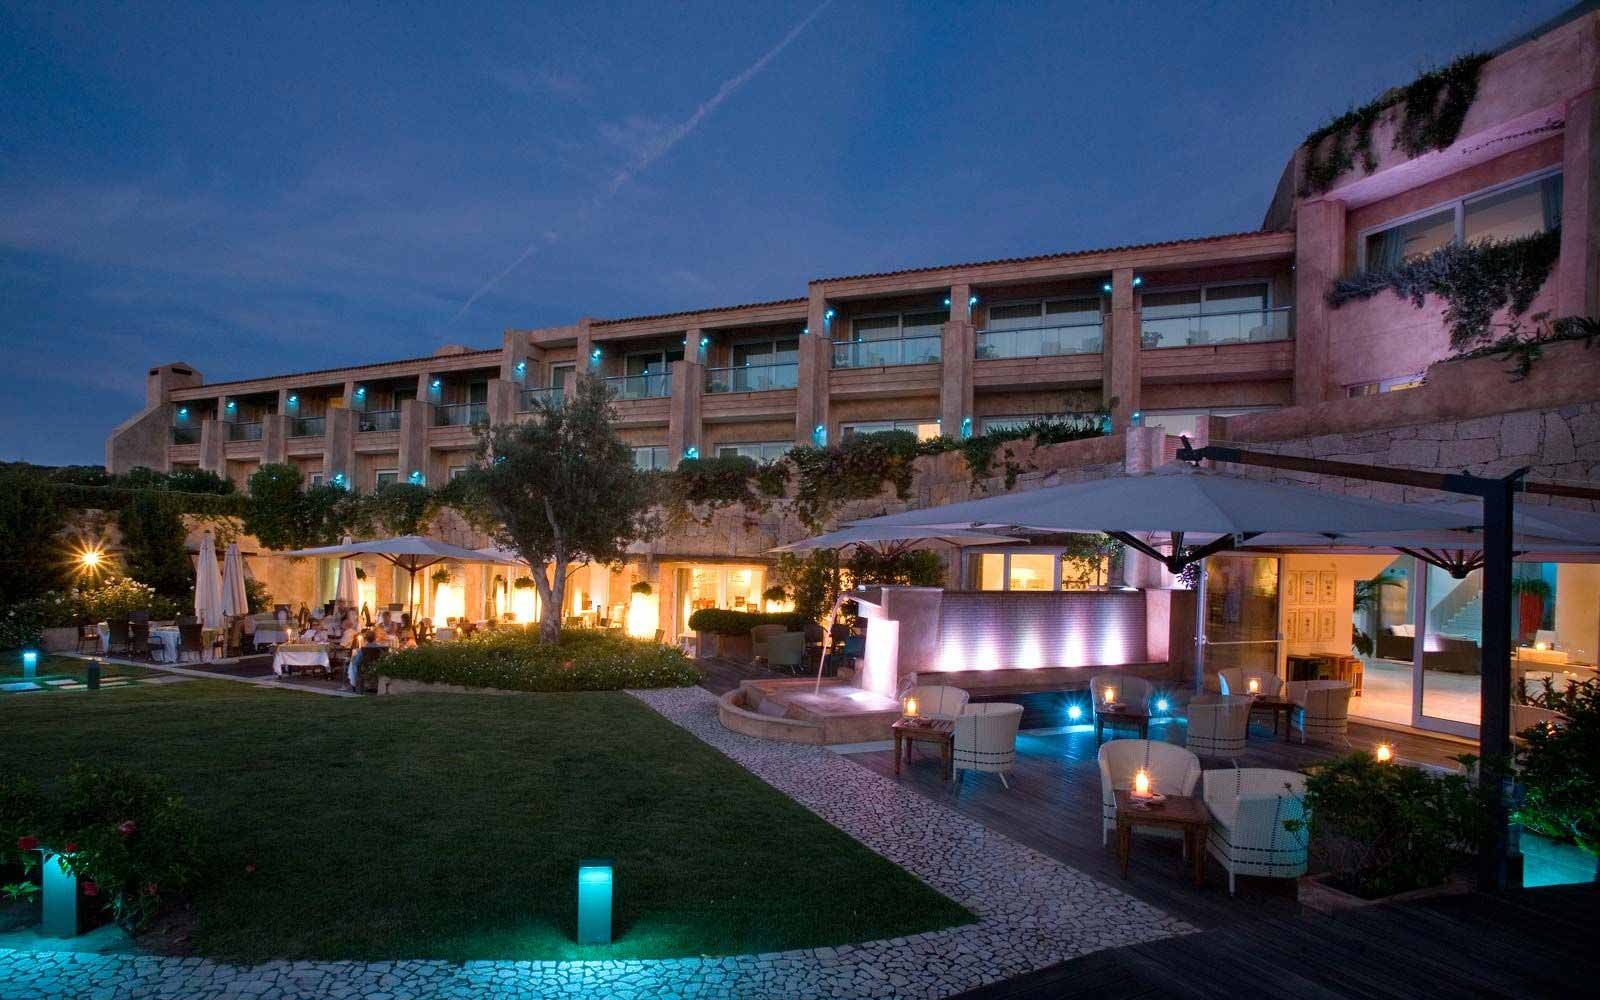 L'Ea Bianca Luxury Resort